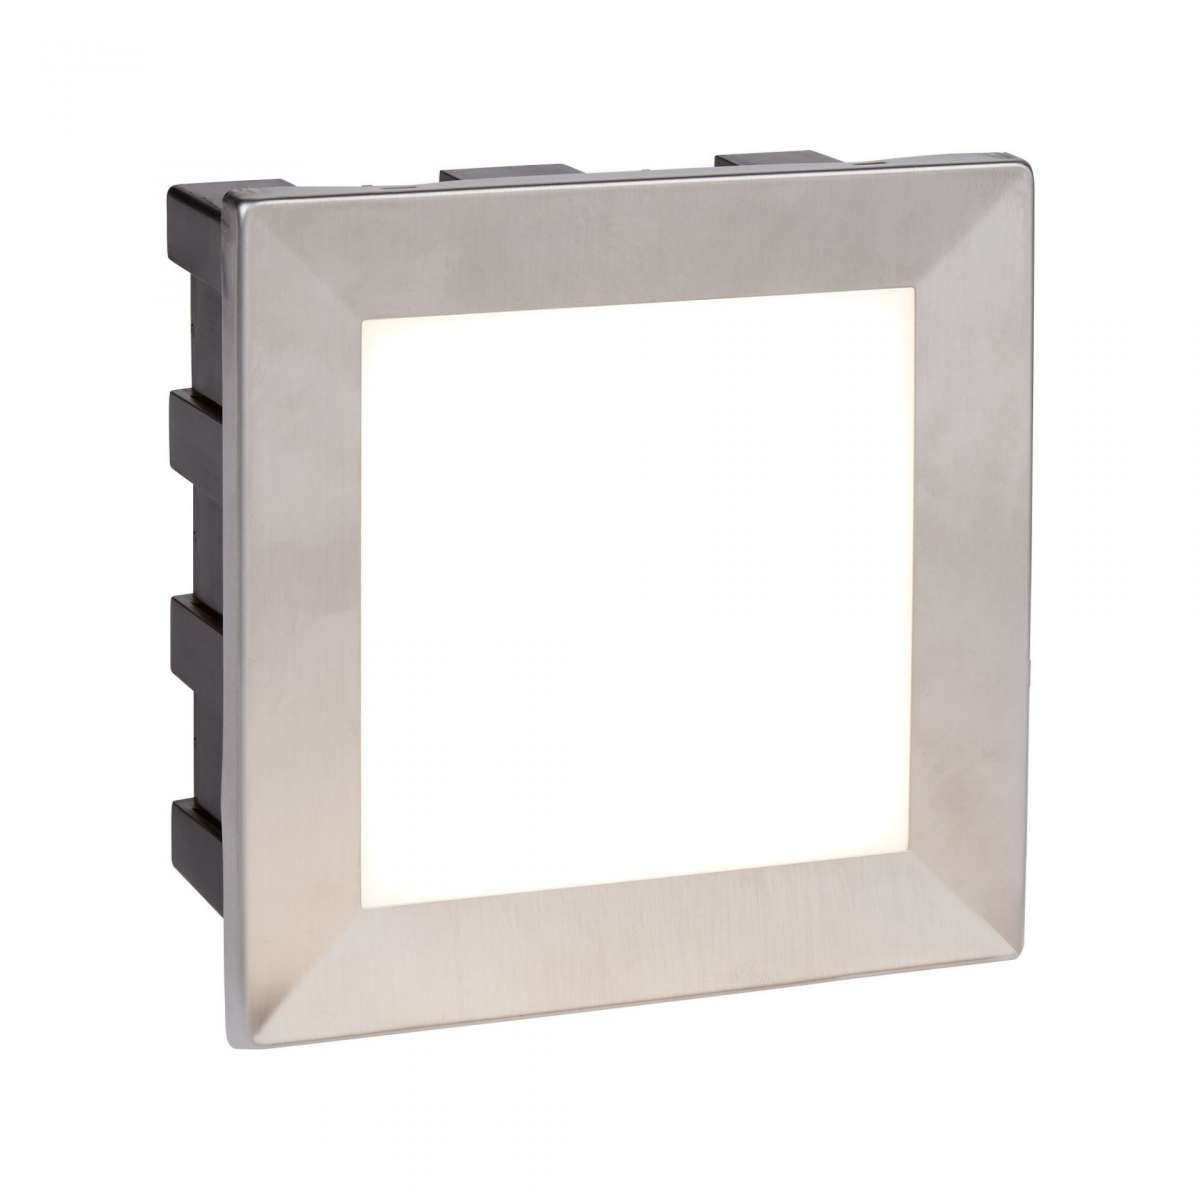 Ankle Stainless Steel 3.5 Led Indoor/Outdoor Recessed Square Medium